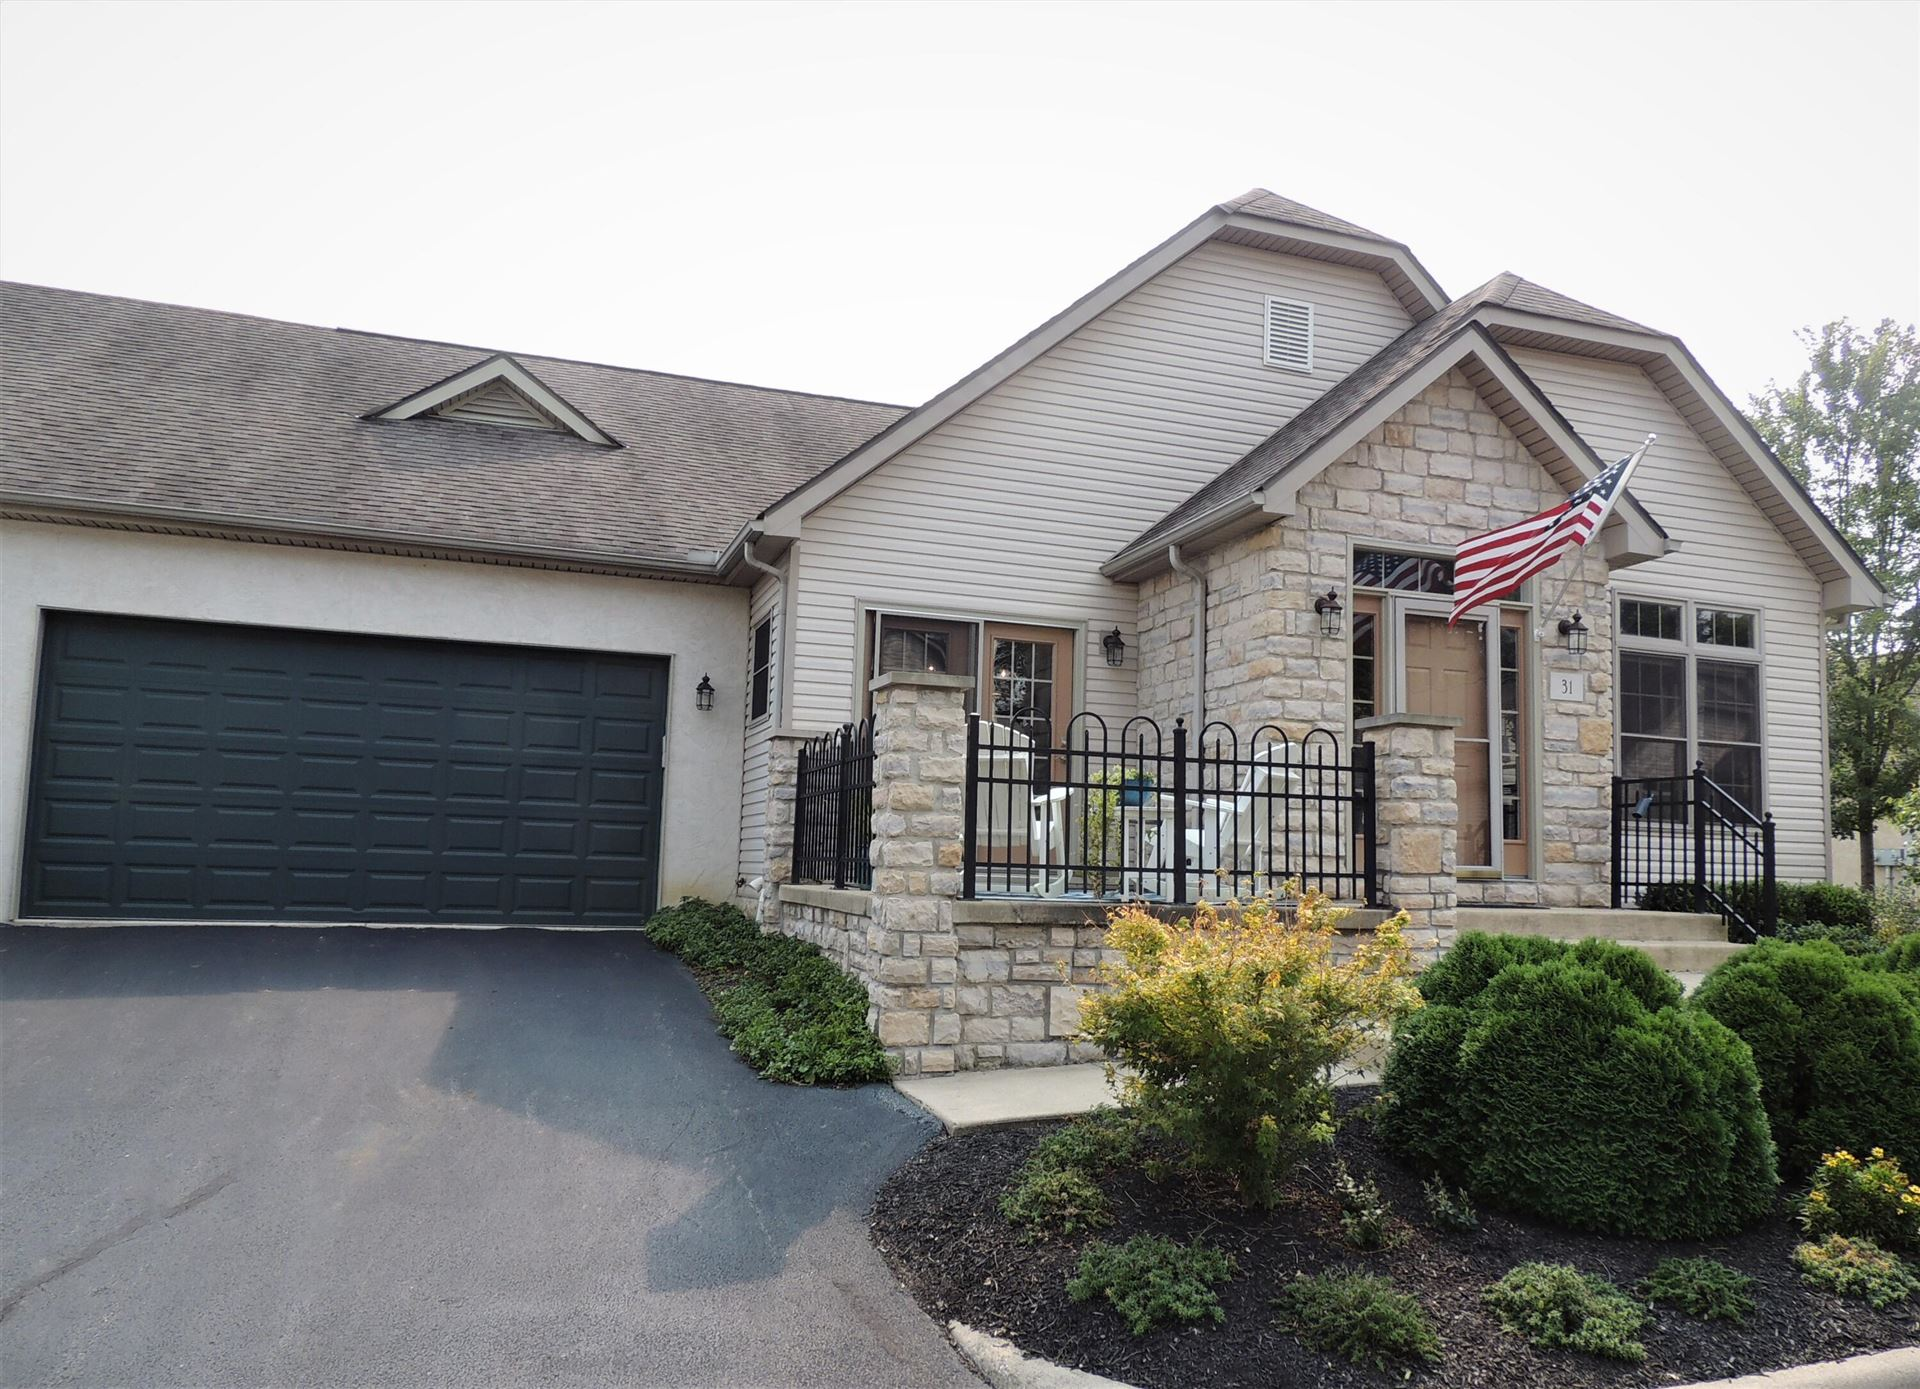 Photo of 31 Timmons Woods Drive, Delaware, OH 43015 (MLS # 221036249)